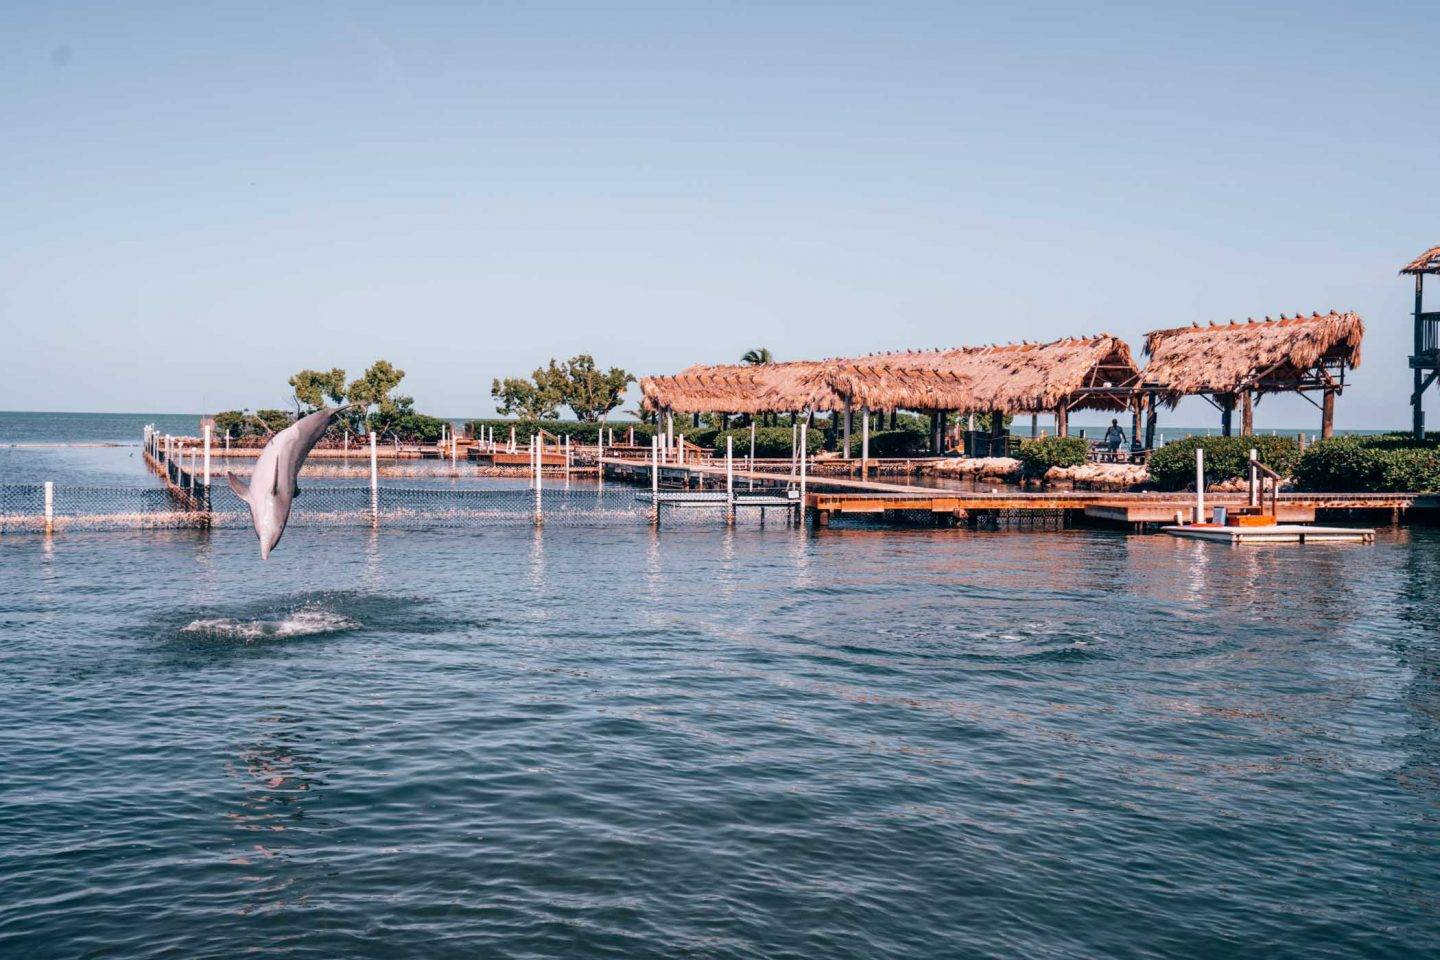 The dolphin research centre in Islamorada is worth stopping by and one of the best things to do in Florida Keys.